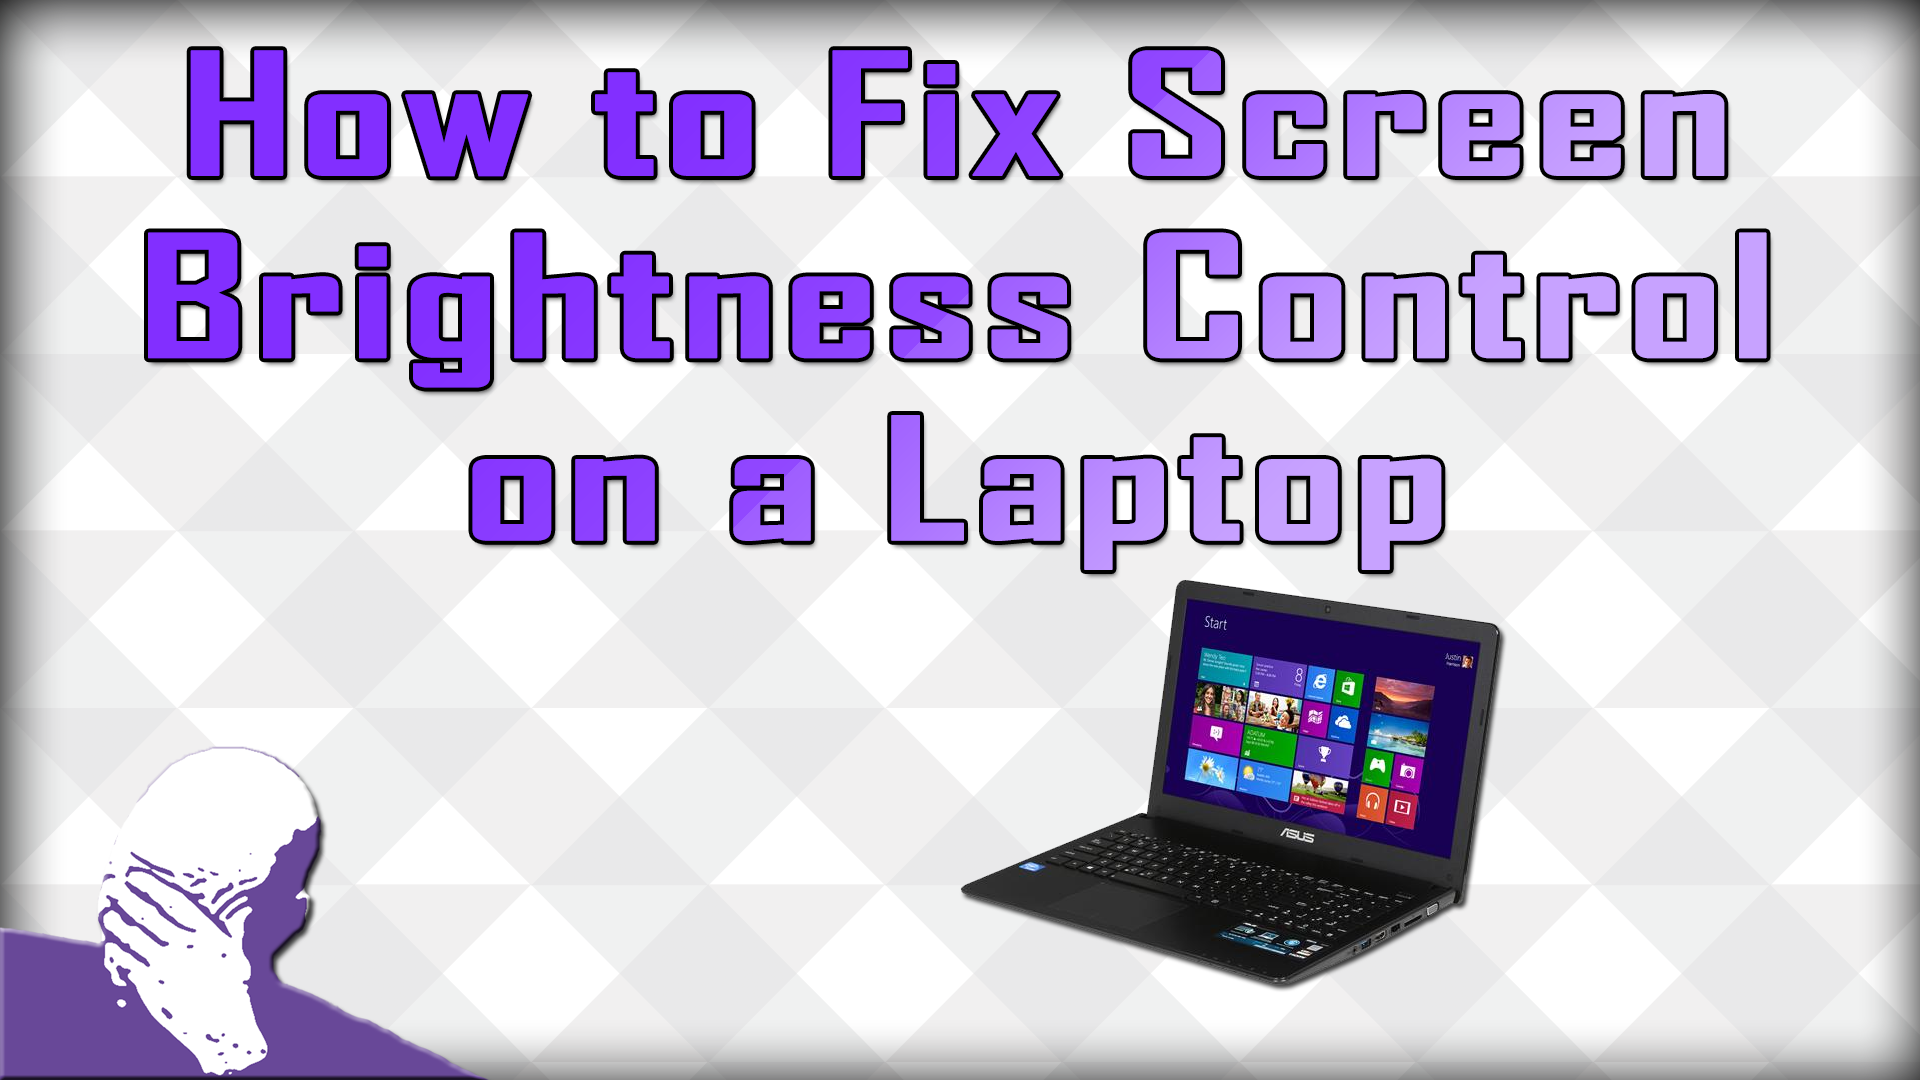 How to Fix Screen Brightness Control on a Laptop